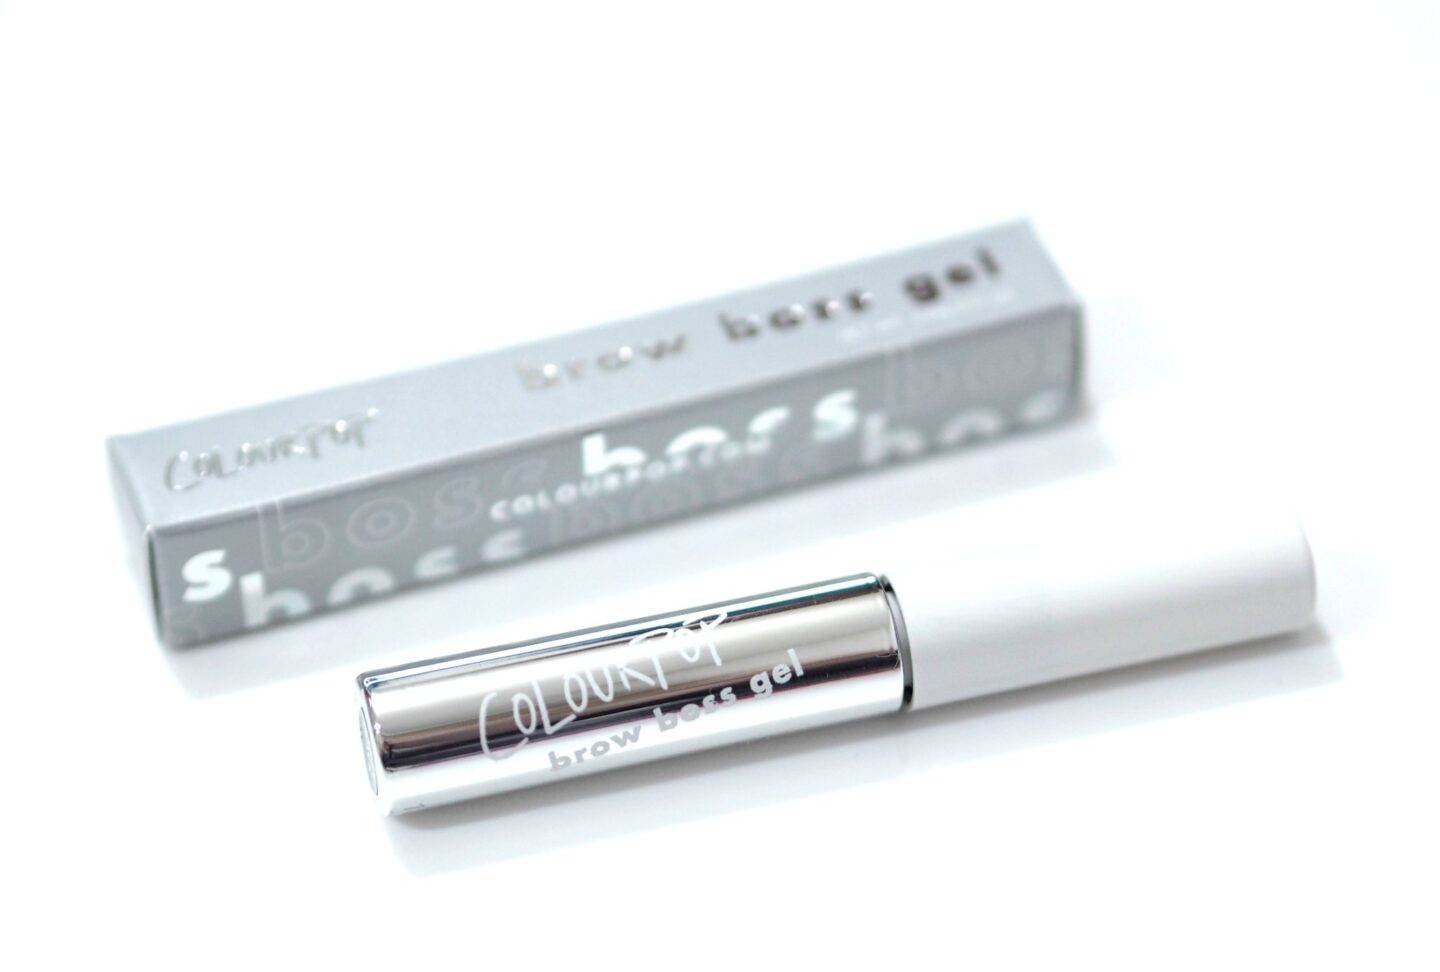 ColourPop tinted brow gel in the shade Soft Black - a possible Benefit Gimme Brow dupe